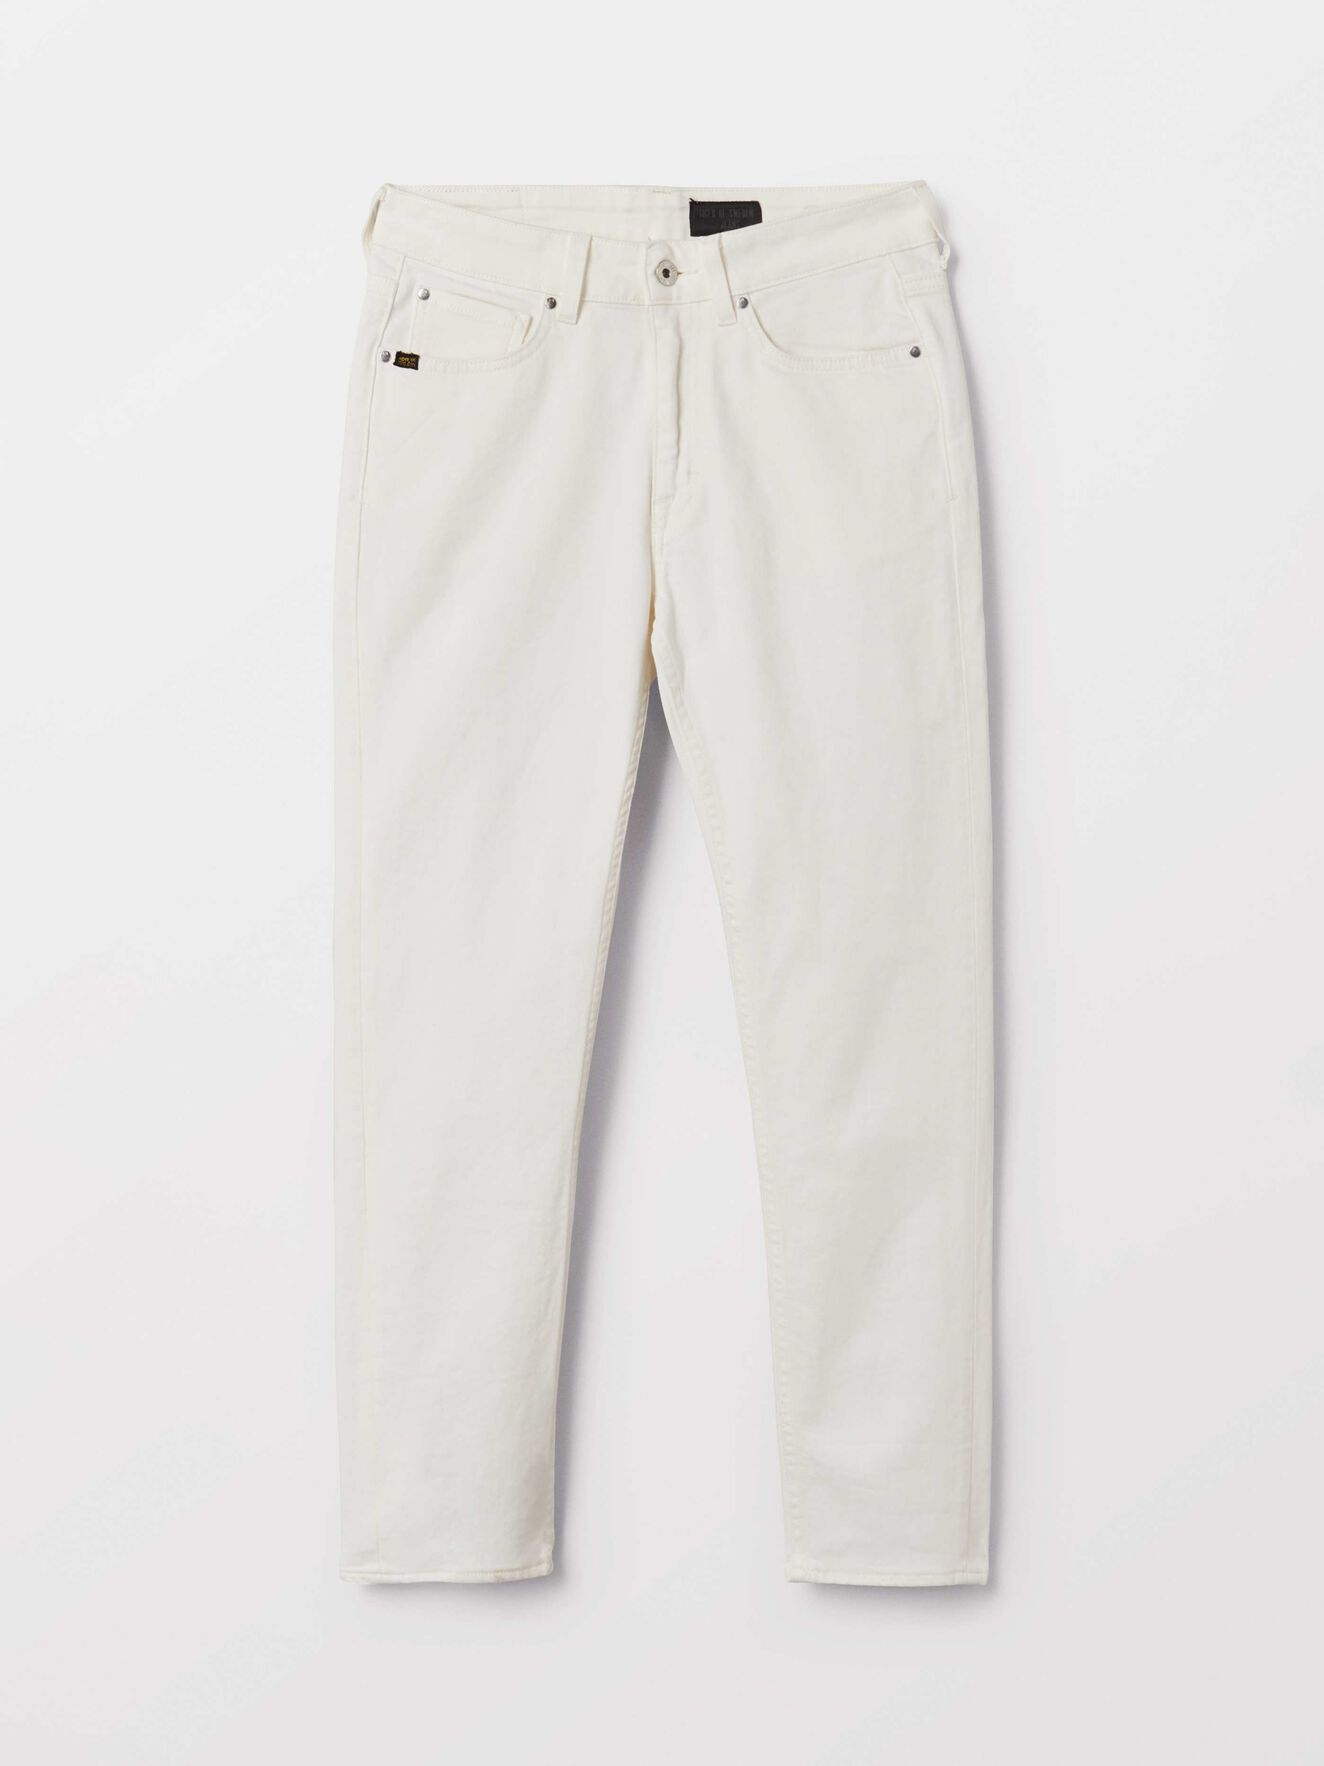 Lea Jeans in White from Tiger of Sweden